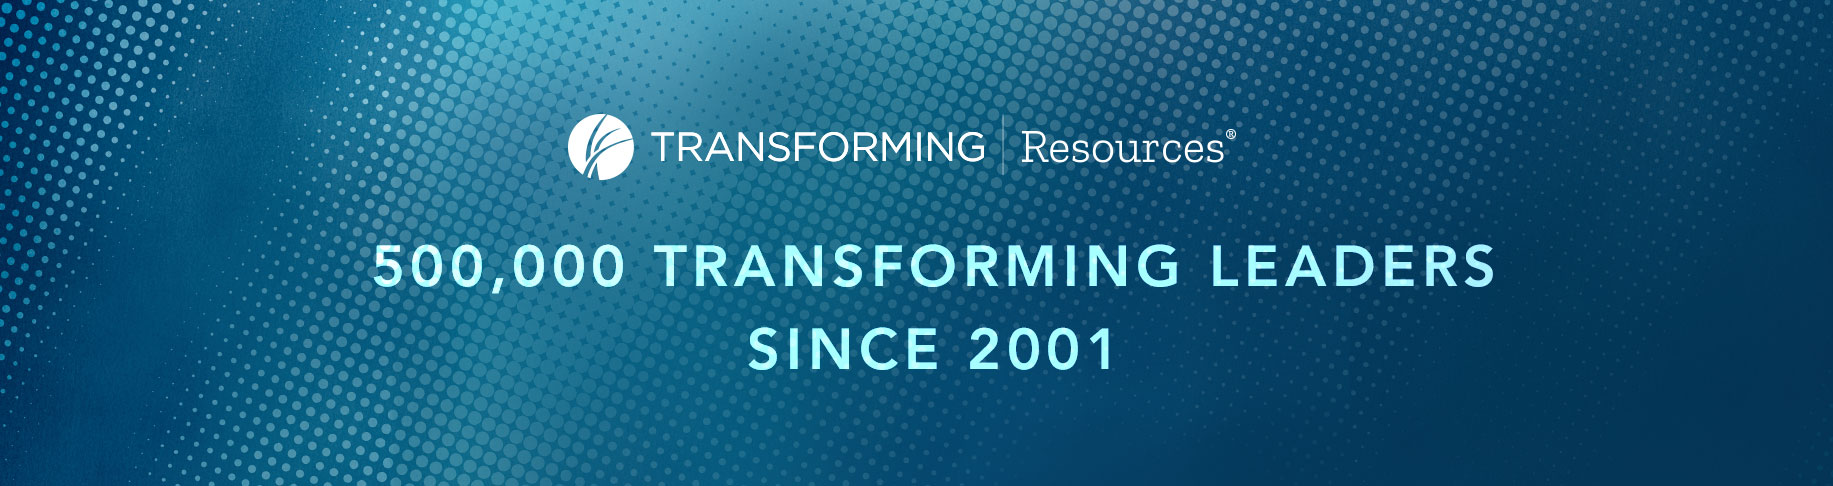 Transforming Resources